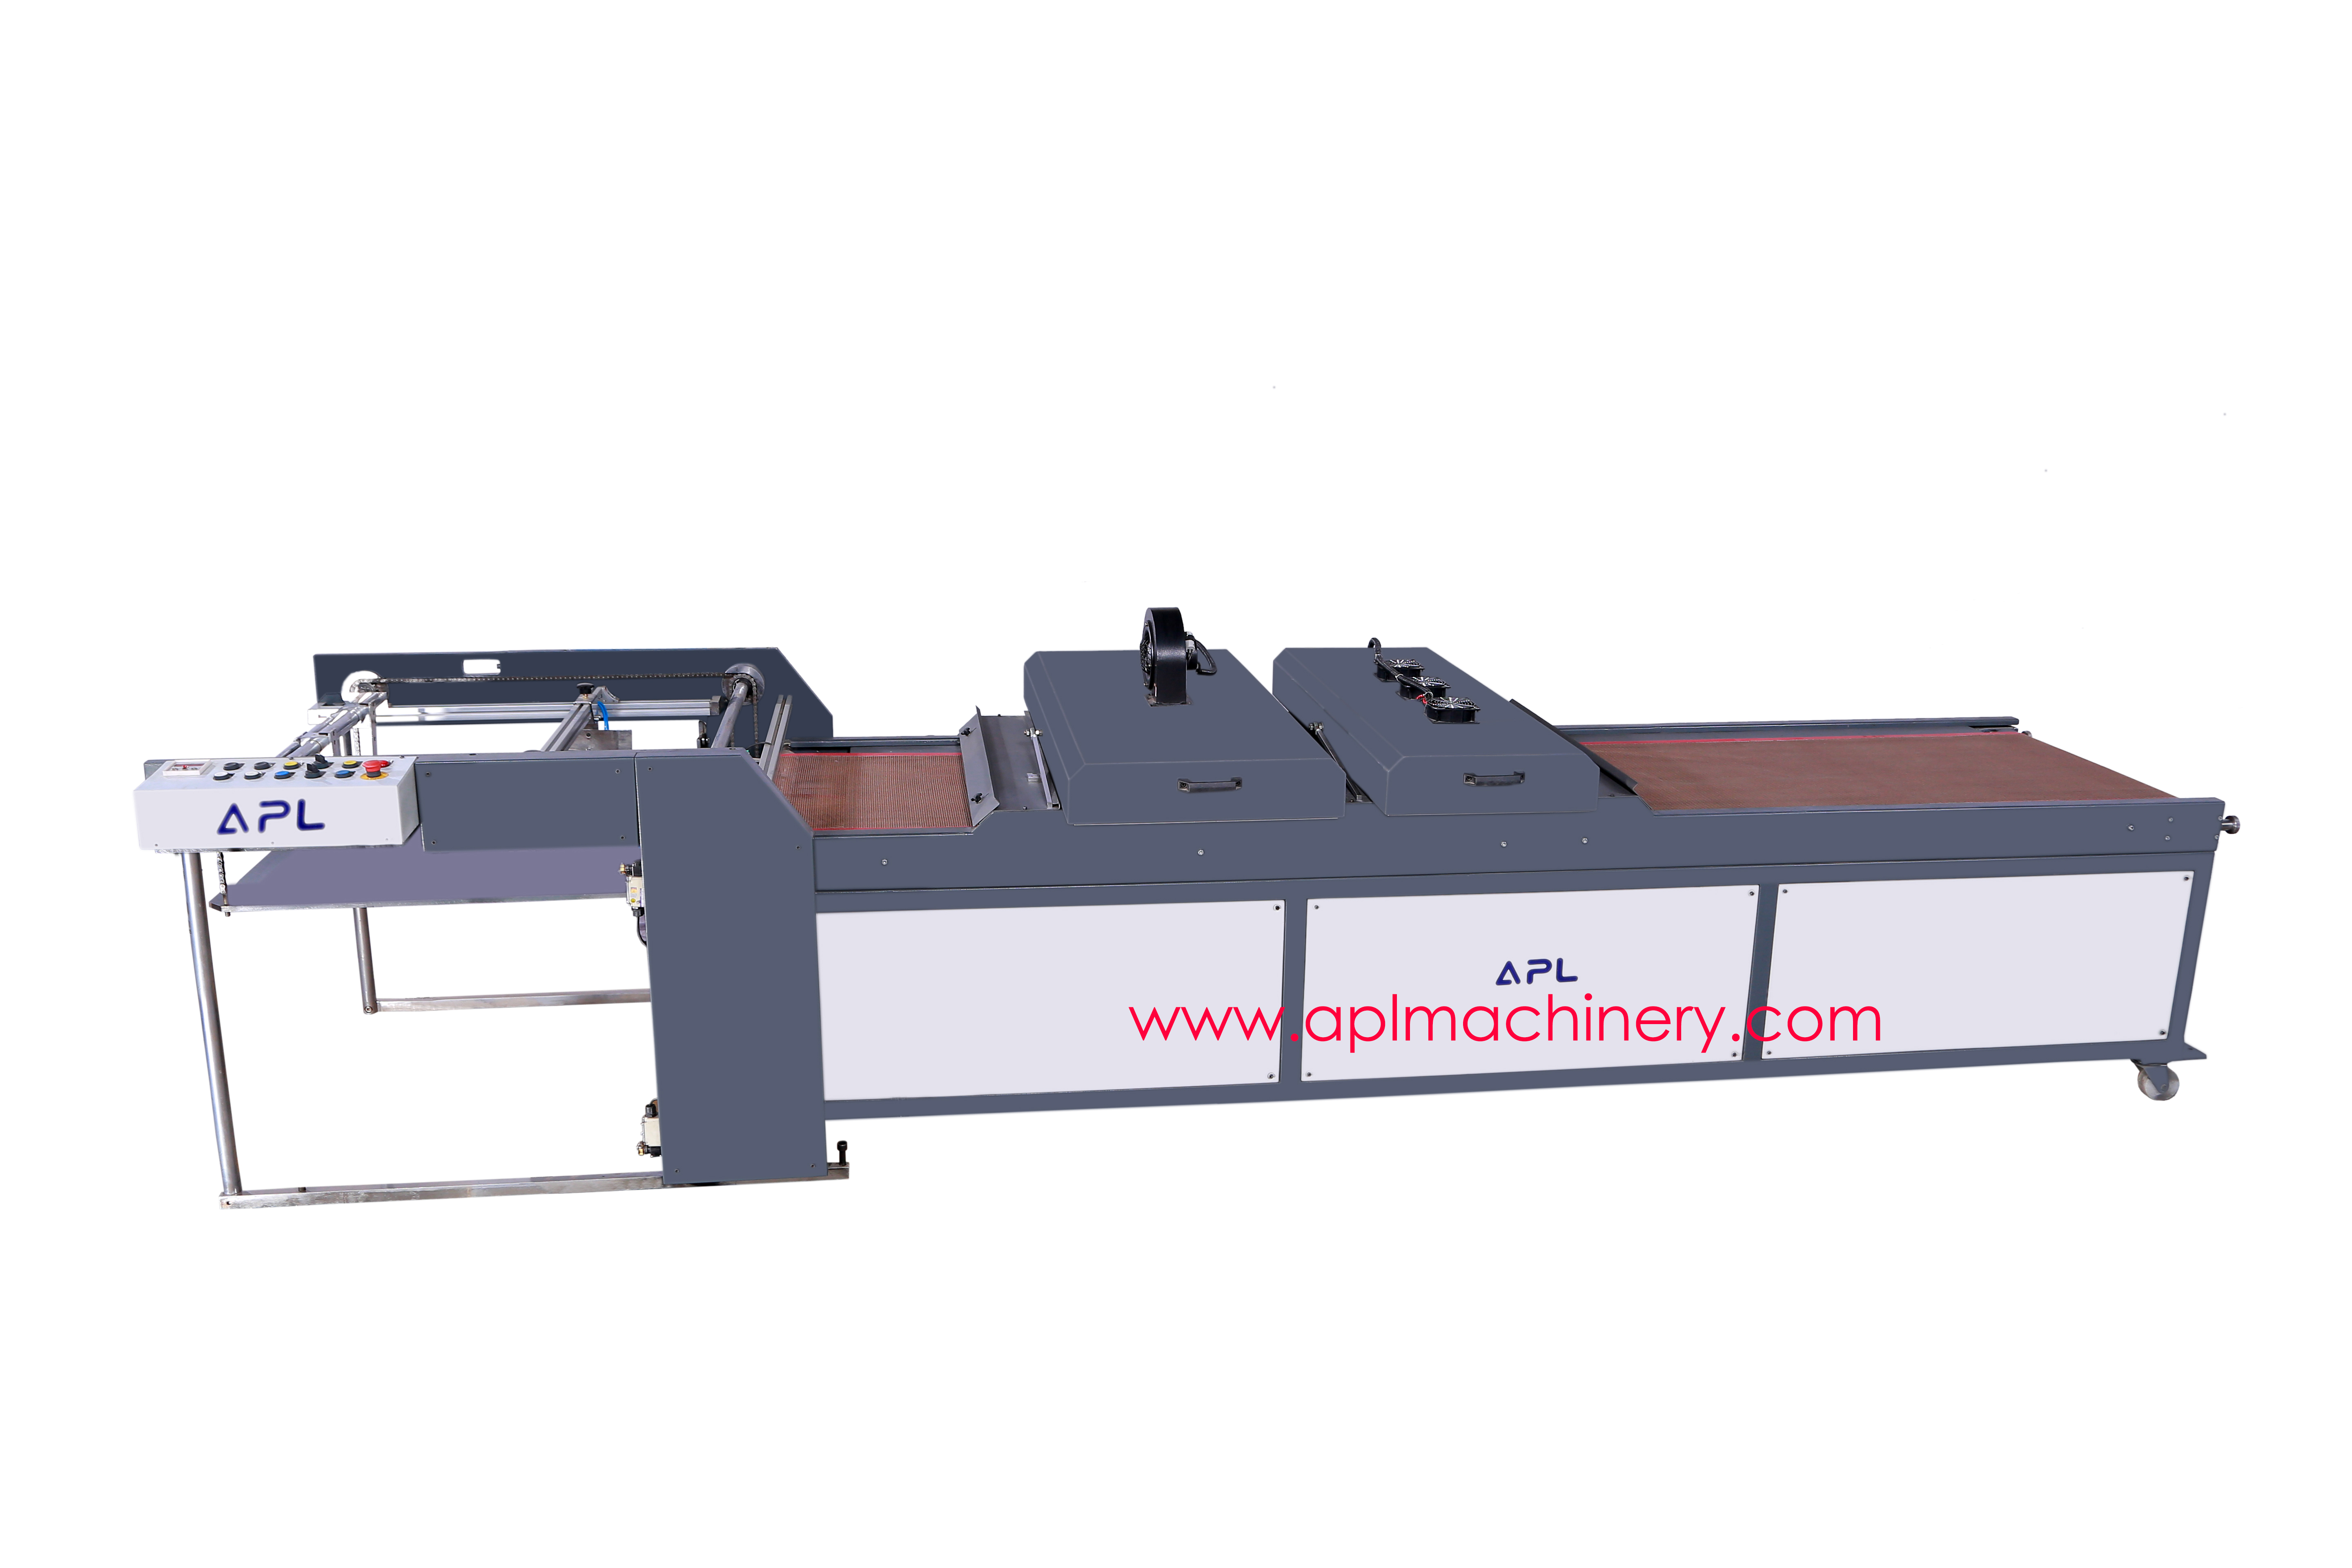 Uv-coating and curing machine